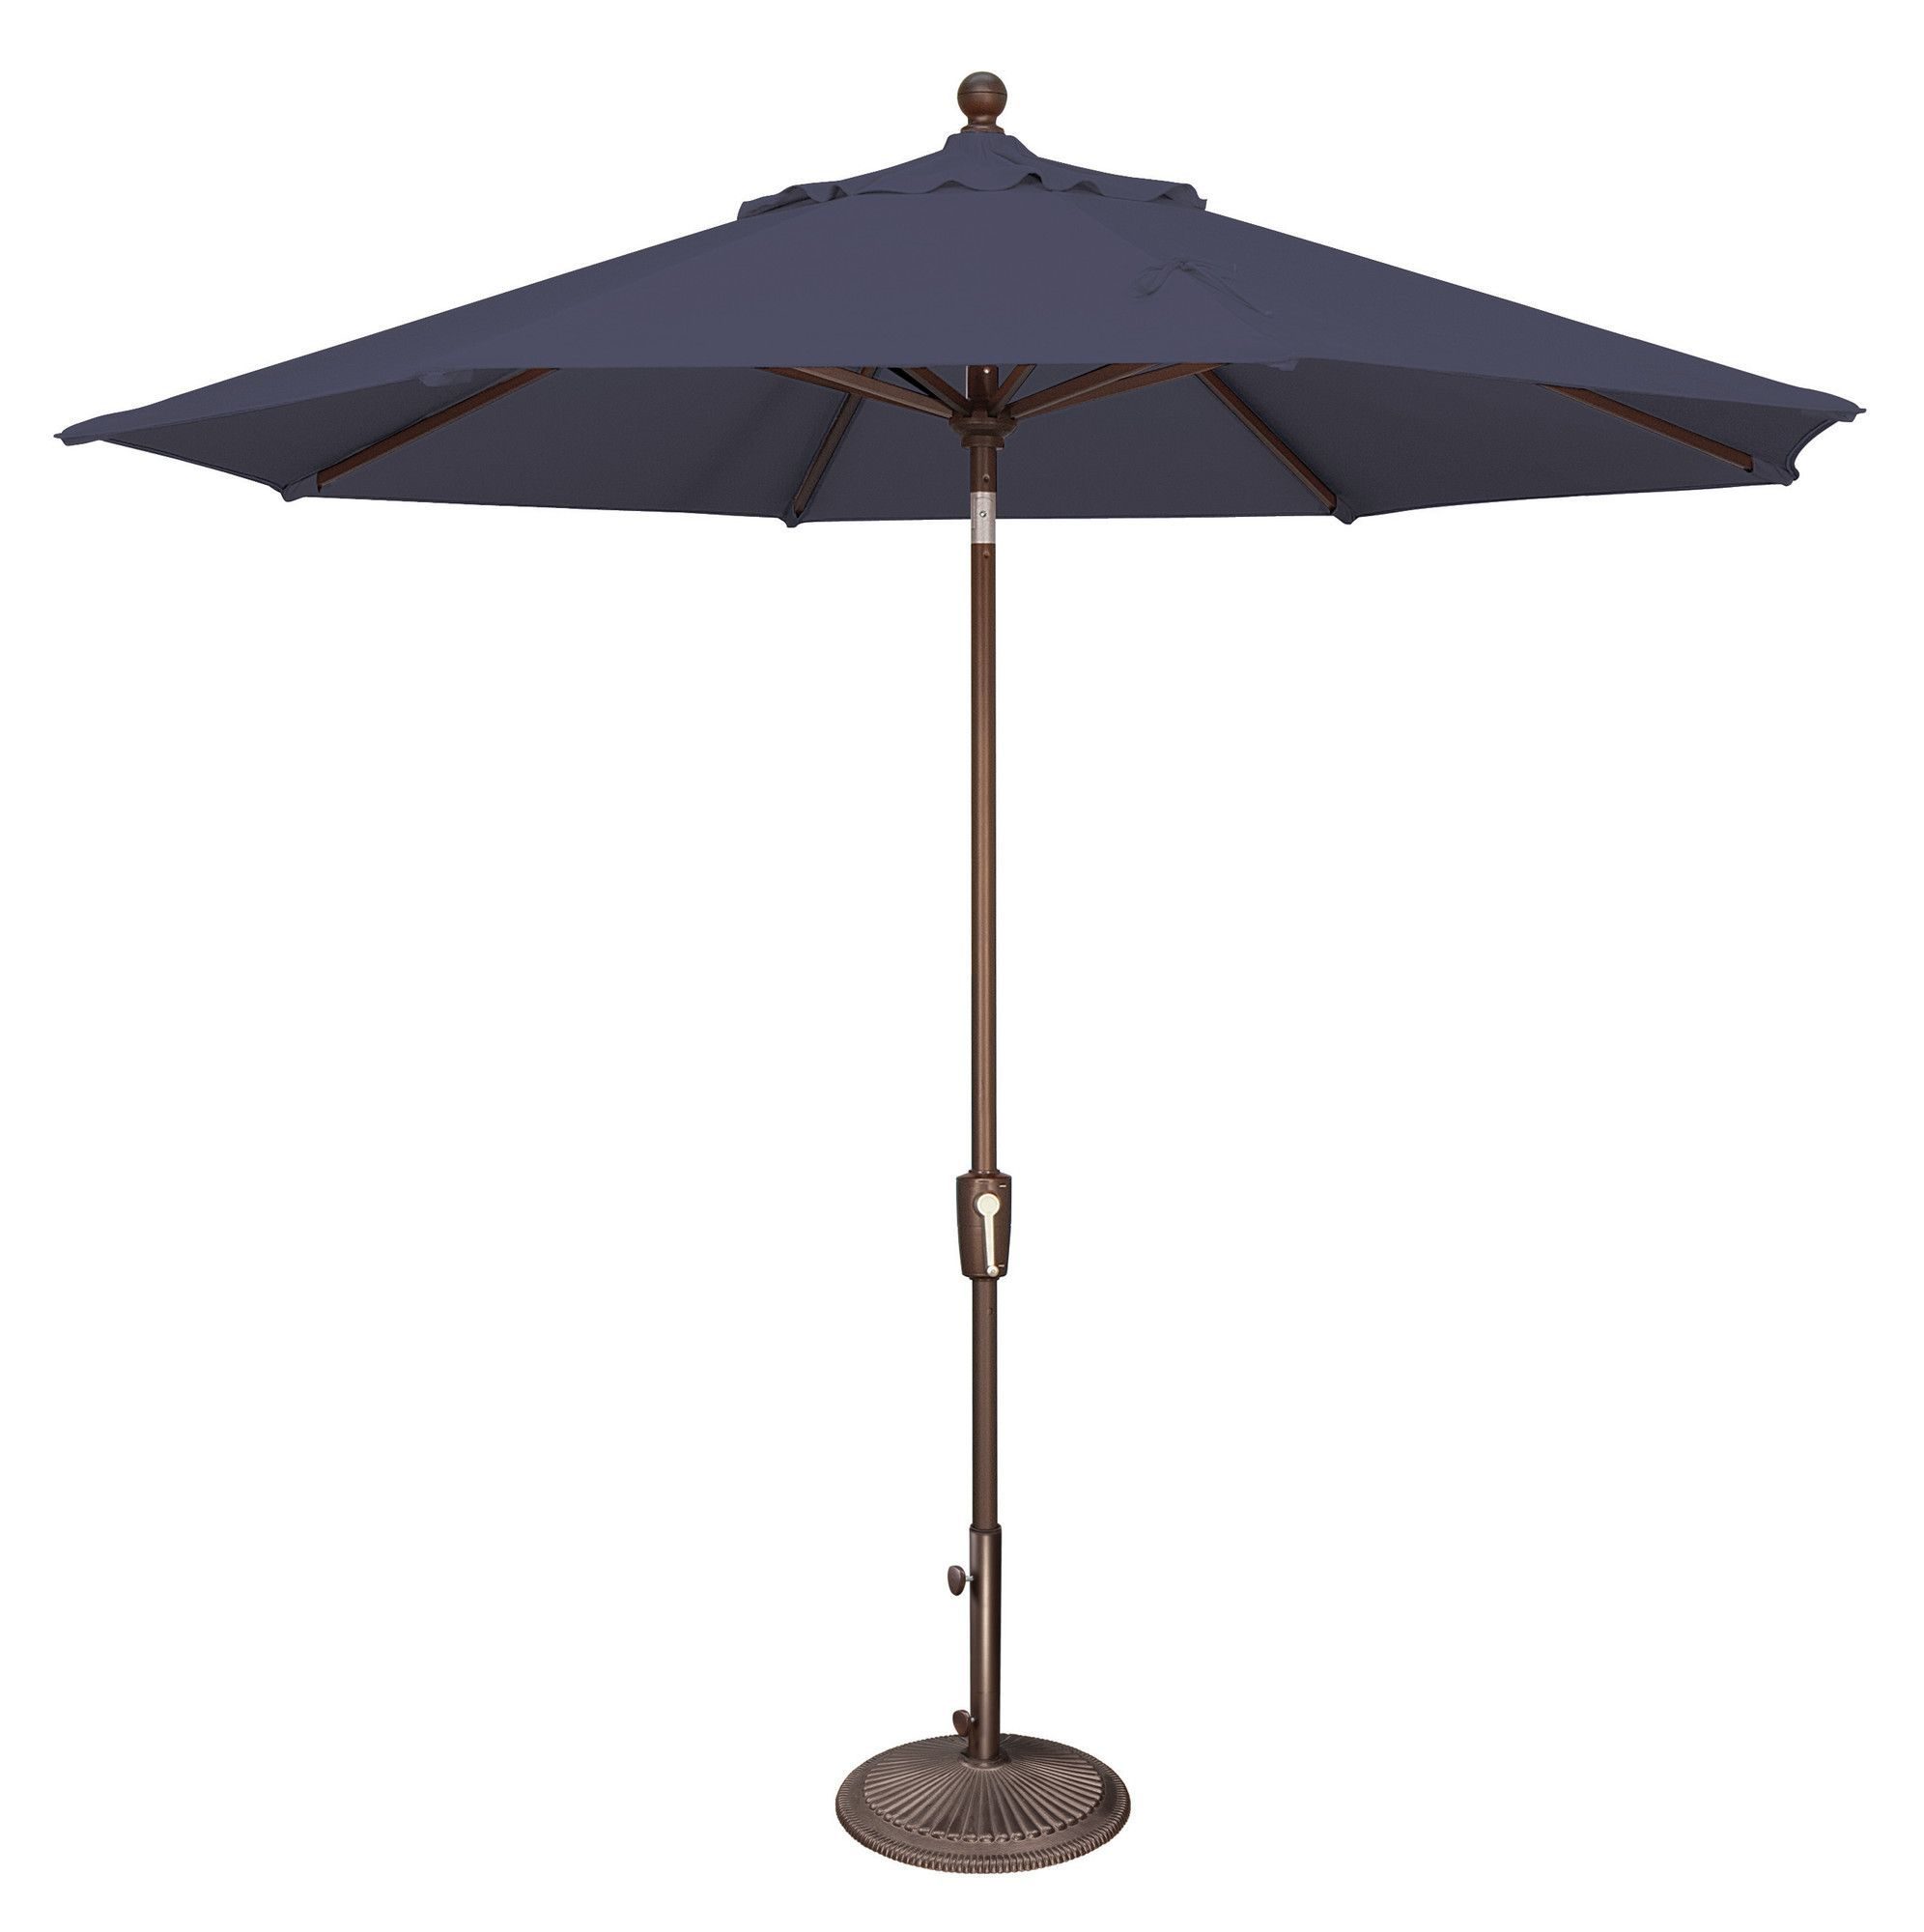 Kelton 10 Market Umbrella Market Umbrella Patio Umbrellas Umbrella Lights